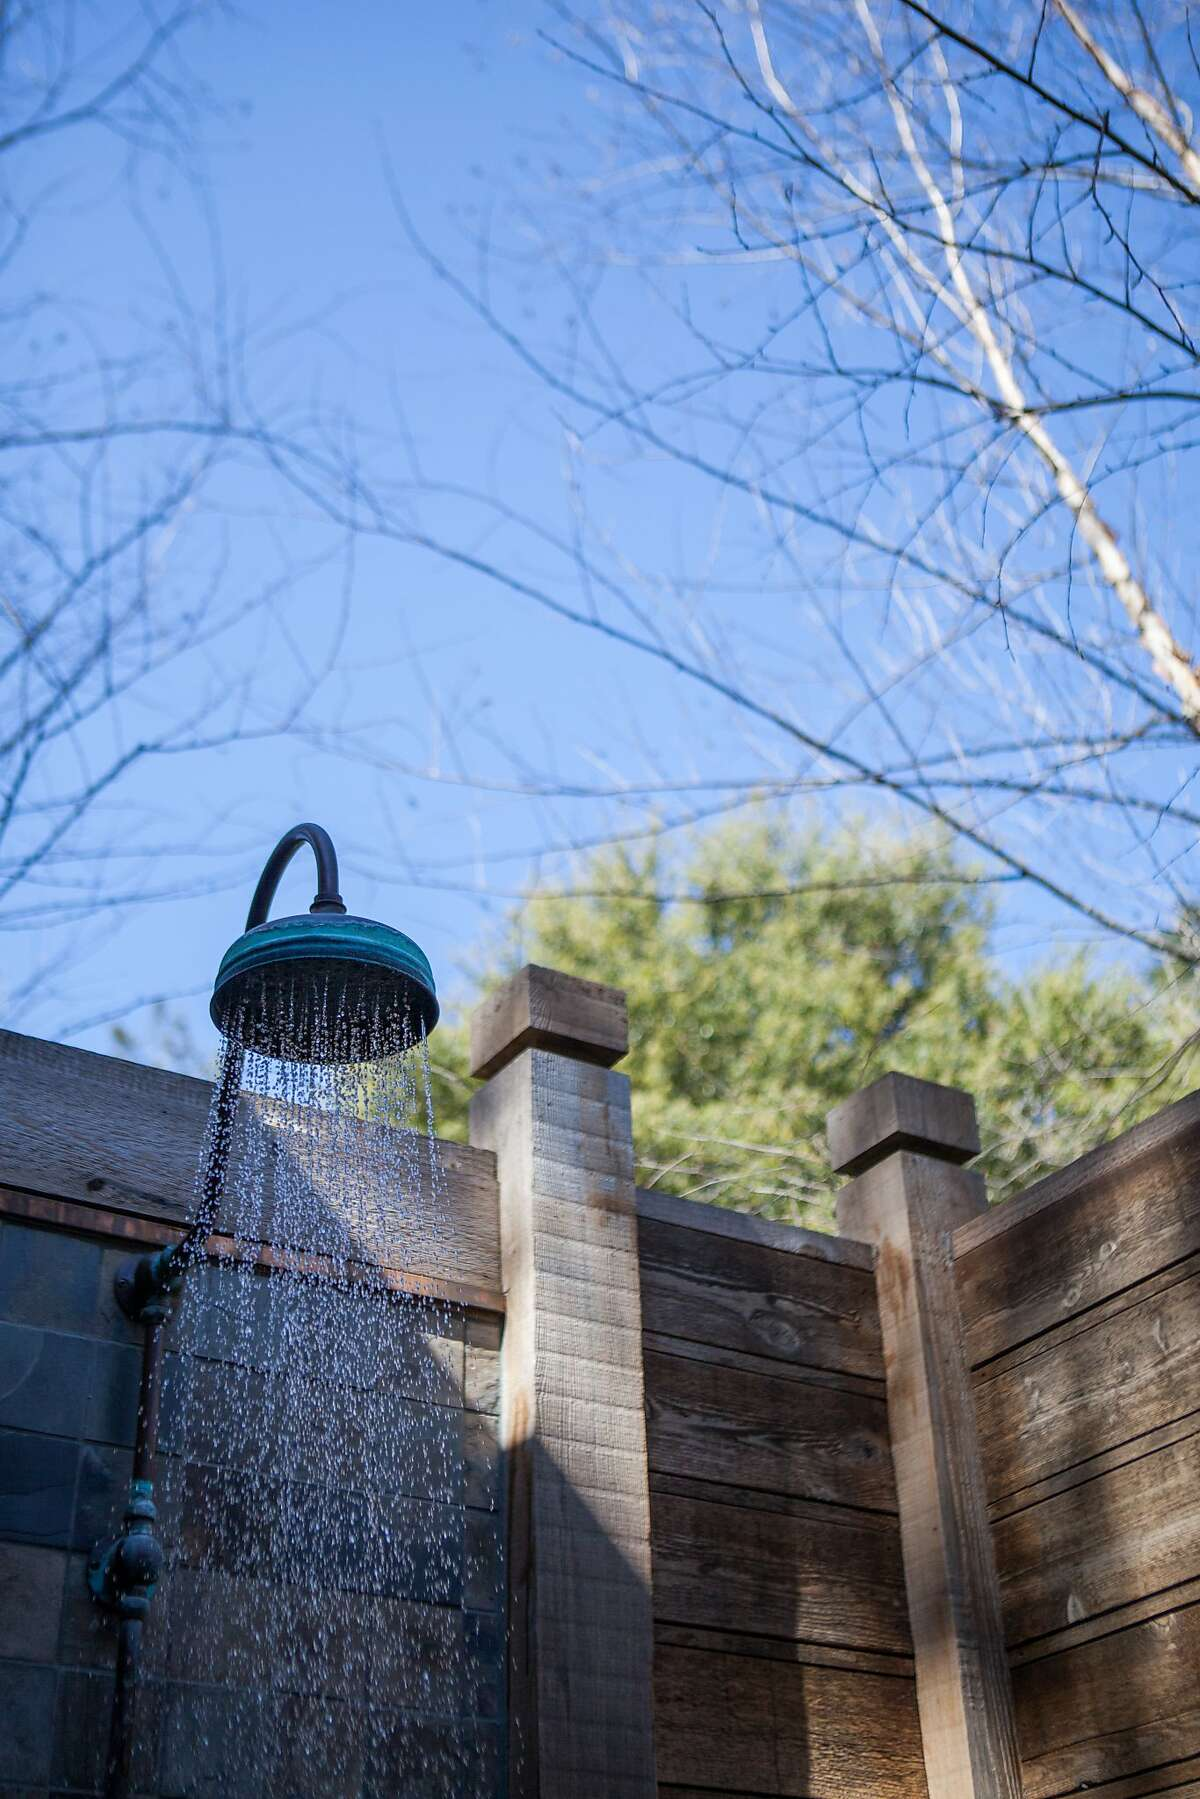 One of the outdoor showers in the overnight rooms at the Calistoga Ranch.